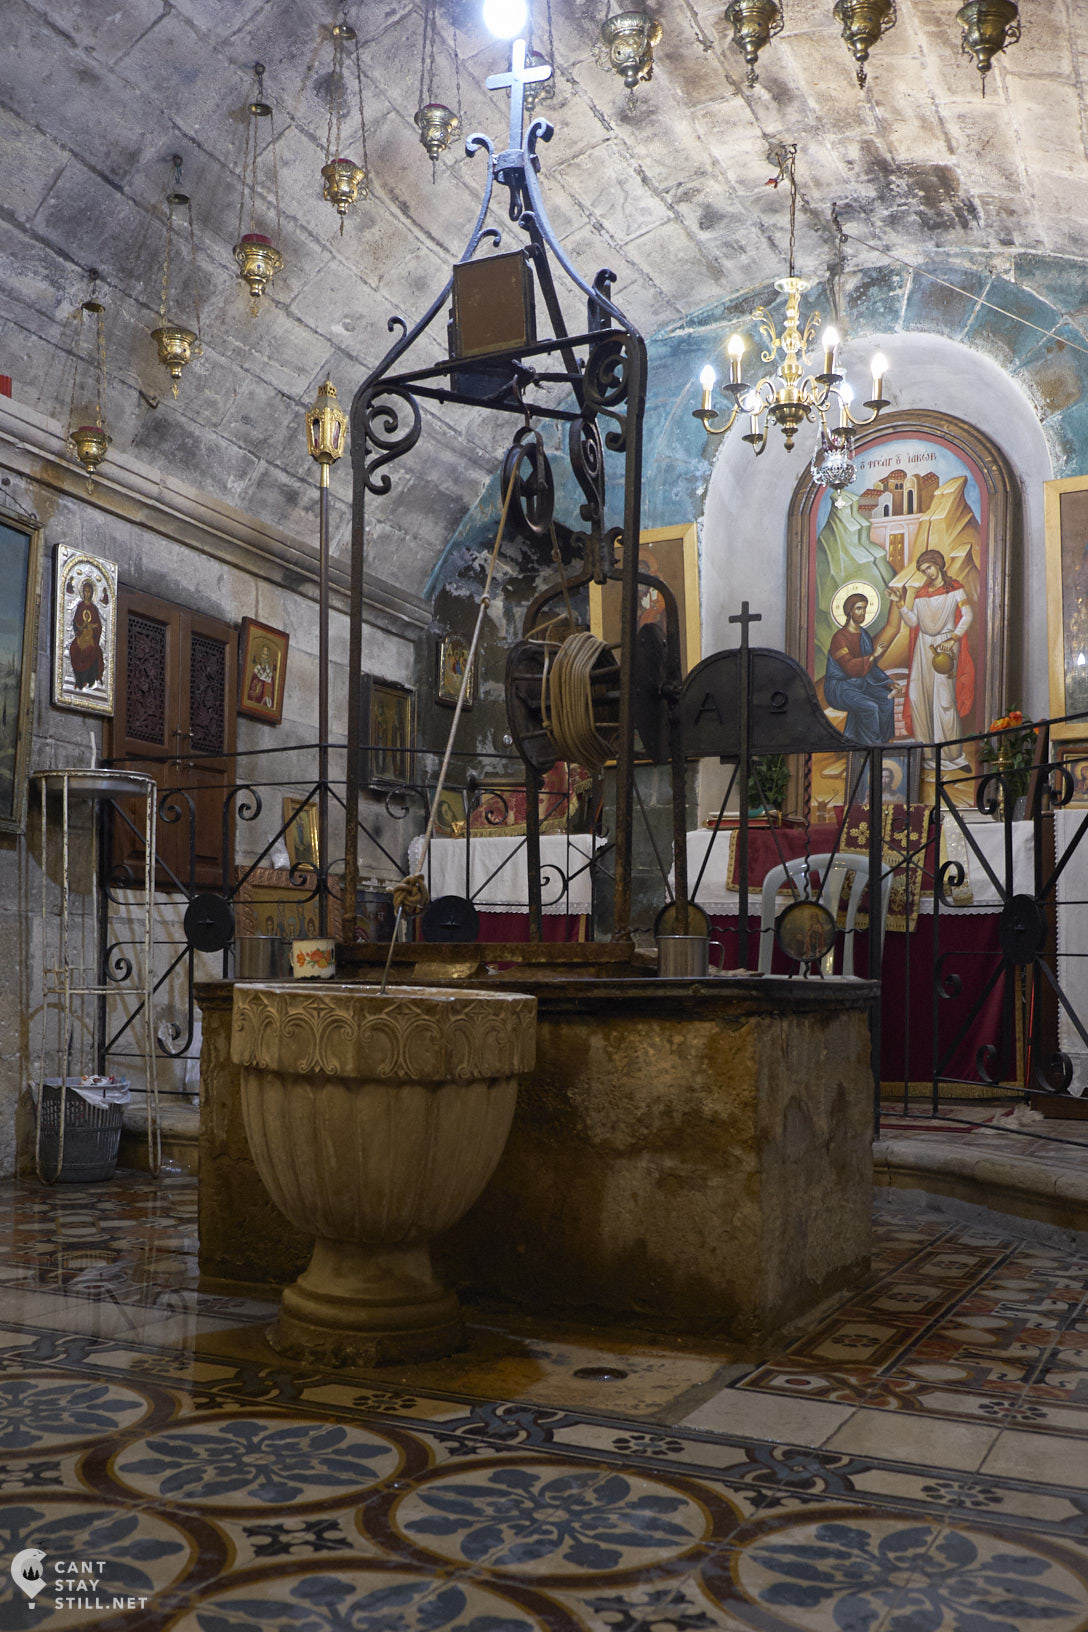 Jacobs Well Nablus Photina Church When Jesus was sitting by this well and a Samaritan woman came to draw water, Jesus revealed Himself to her as the Messiah. She then started spreading the word of her encounter, converting more people to Christianism